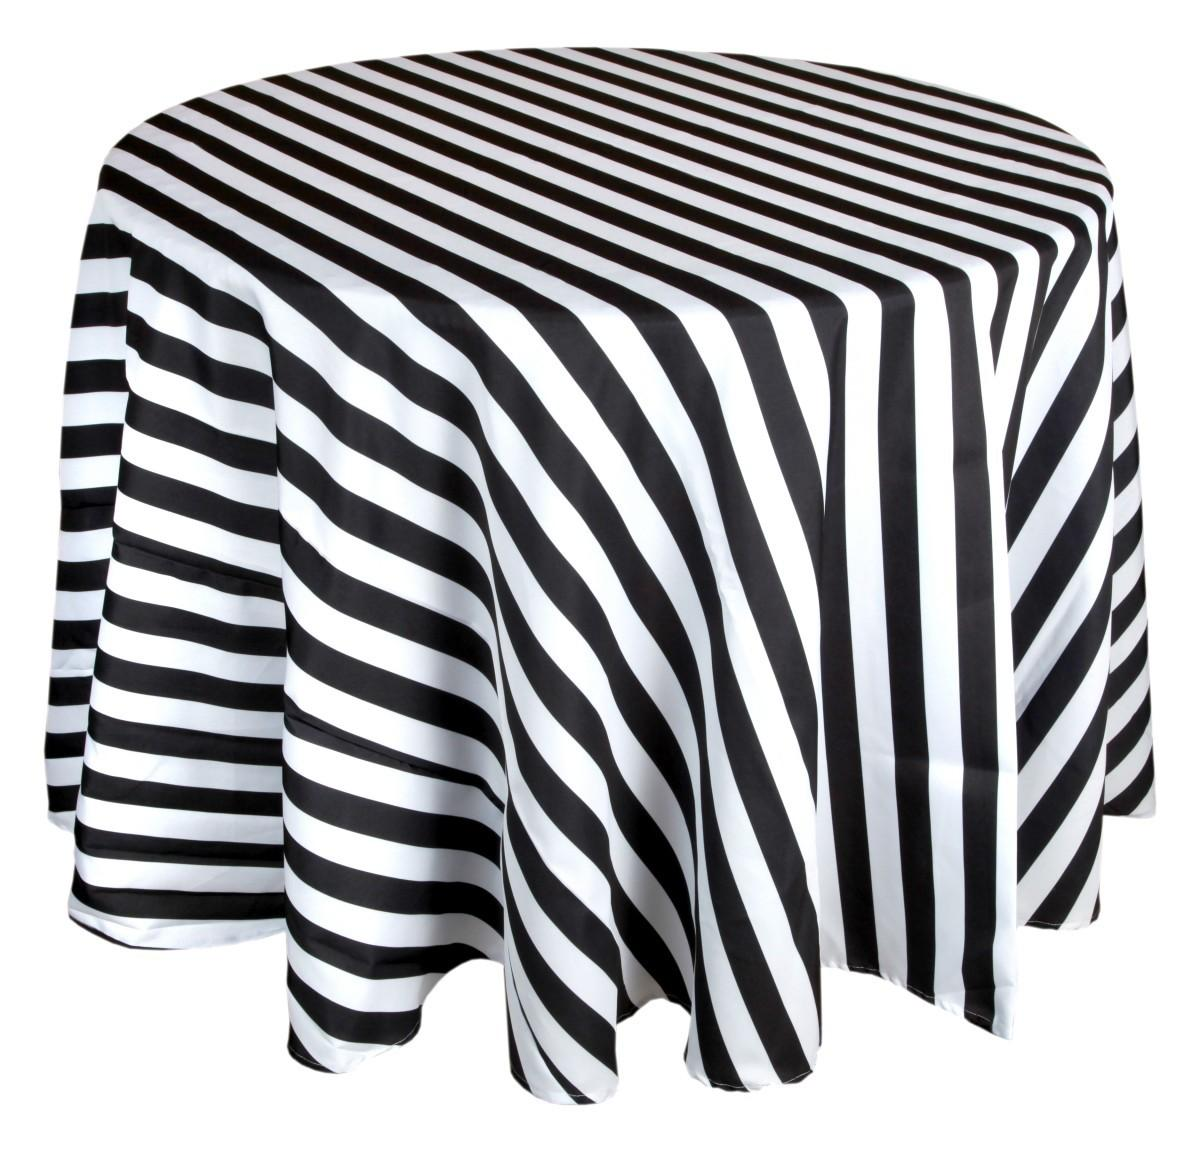 Black White Striped Tablecloth 132 Inch Round